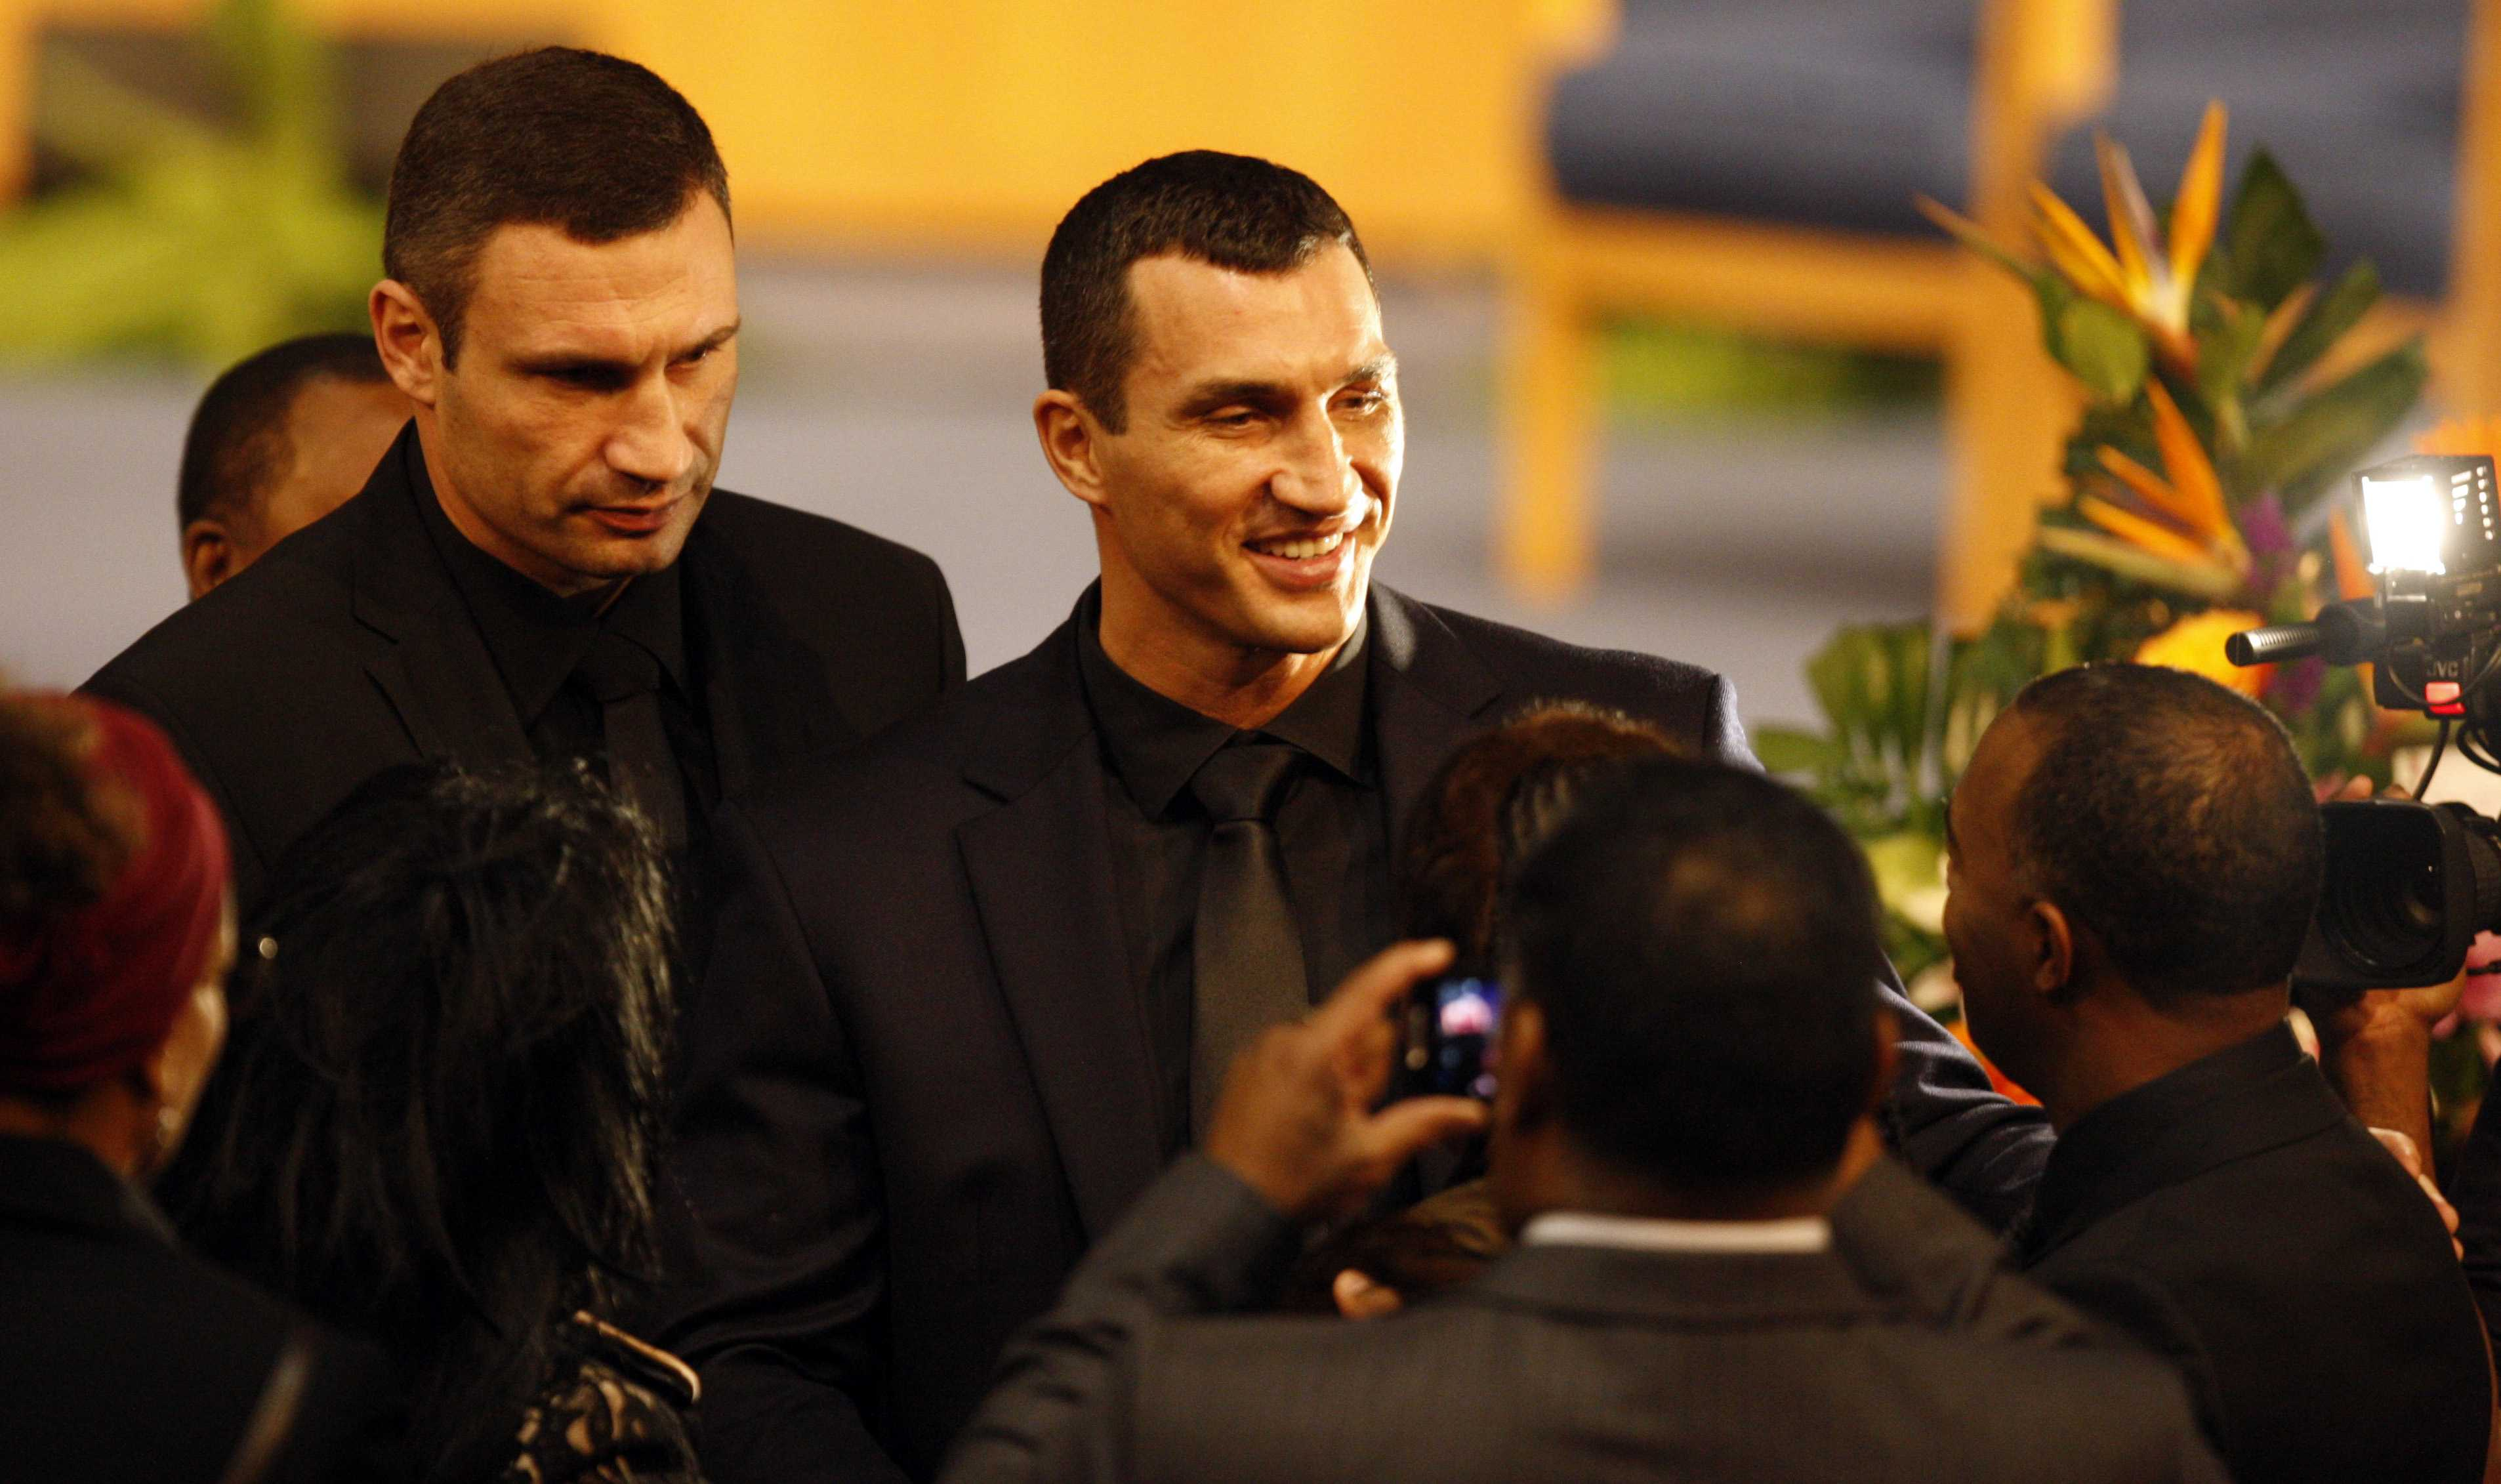 Heavyweight boxers Wladimir and Vitali Klitschko greet family members during family hour before the memorial services for Emanuel Steward Tuesday, November 13, 2012 at Greater Grace Temple in Detroit, Michigan. (Kirthmon F. Dozier/Detroit Free Press/MCT)